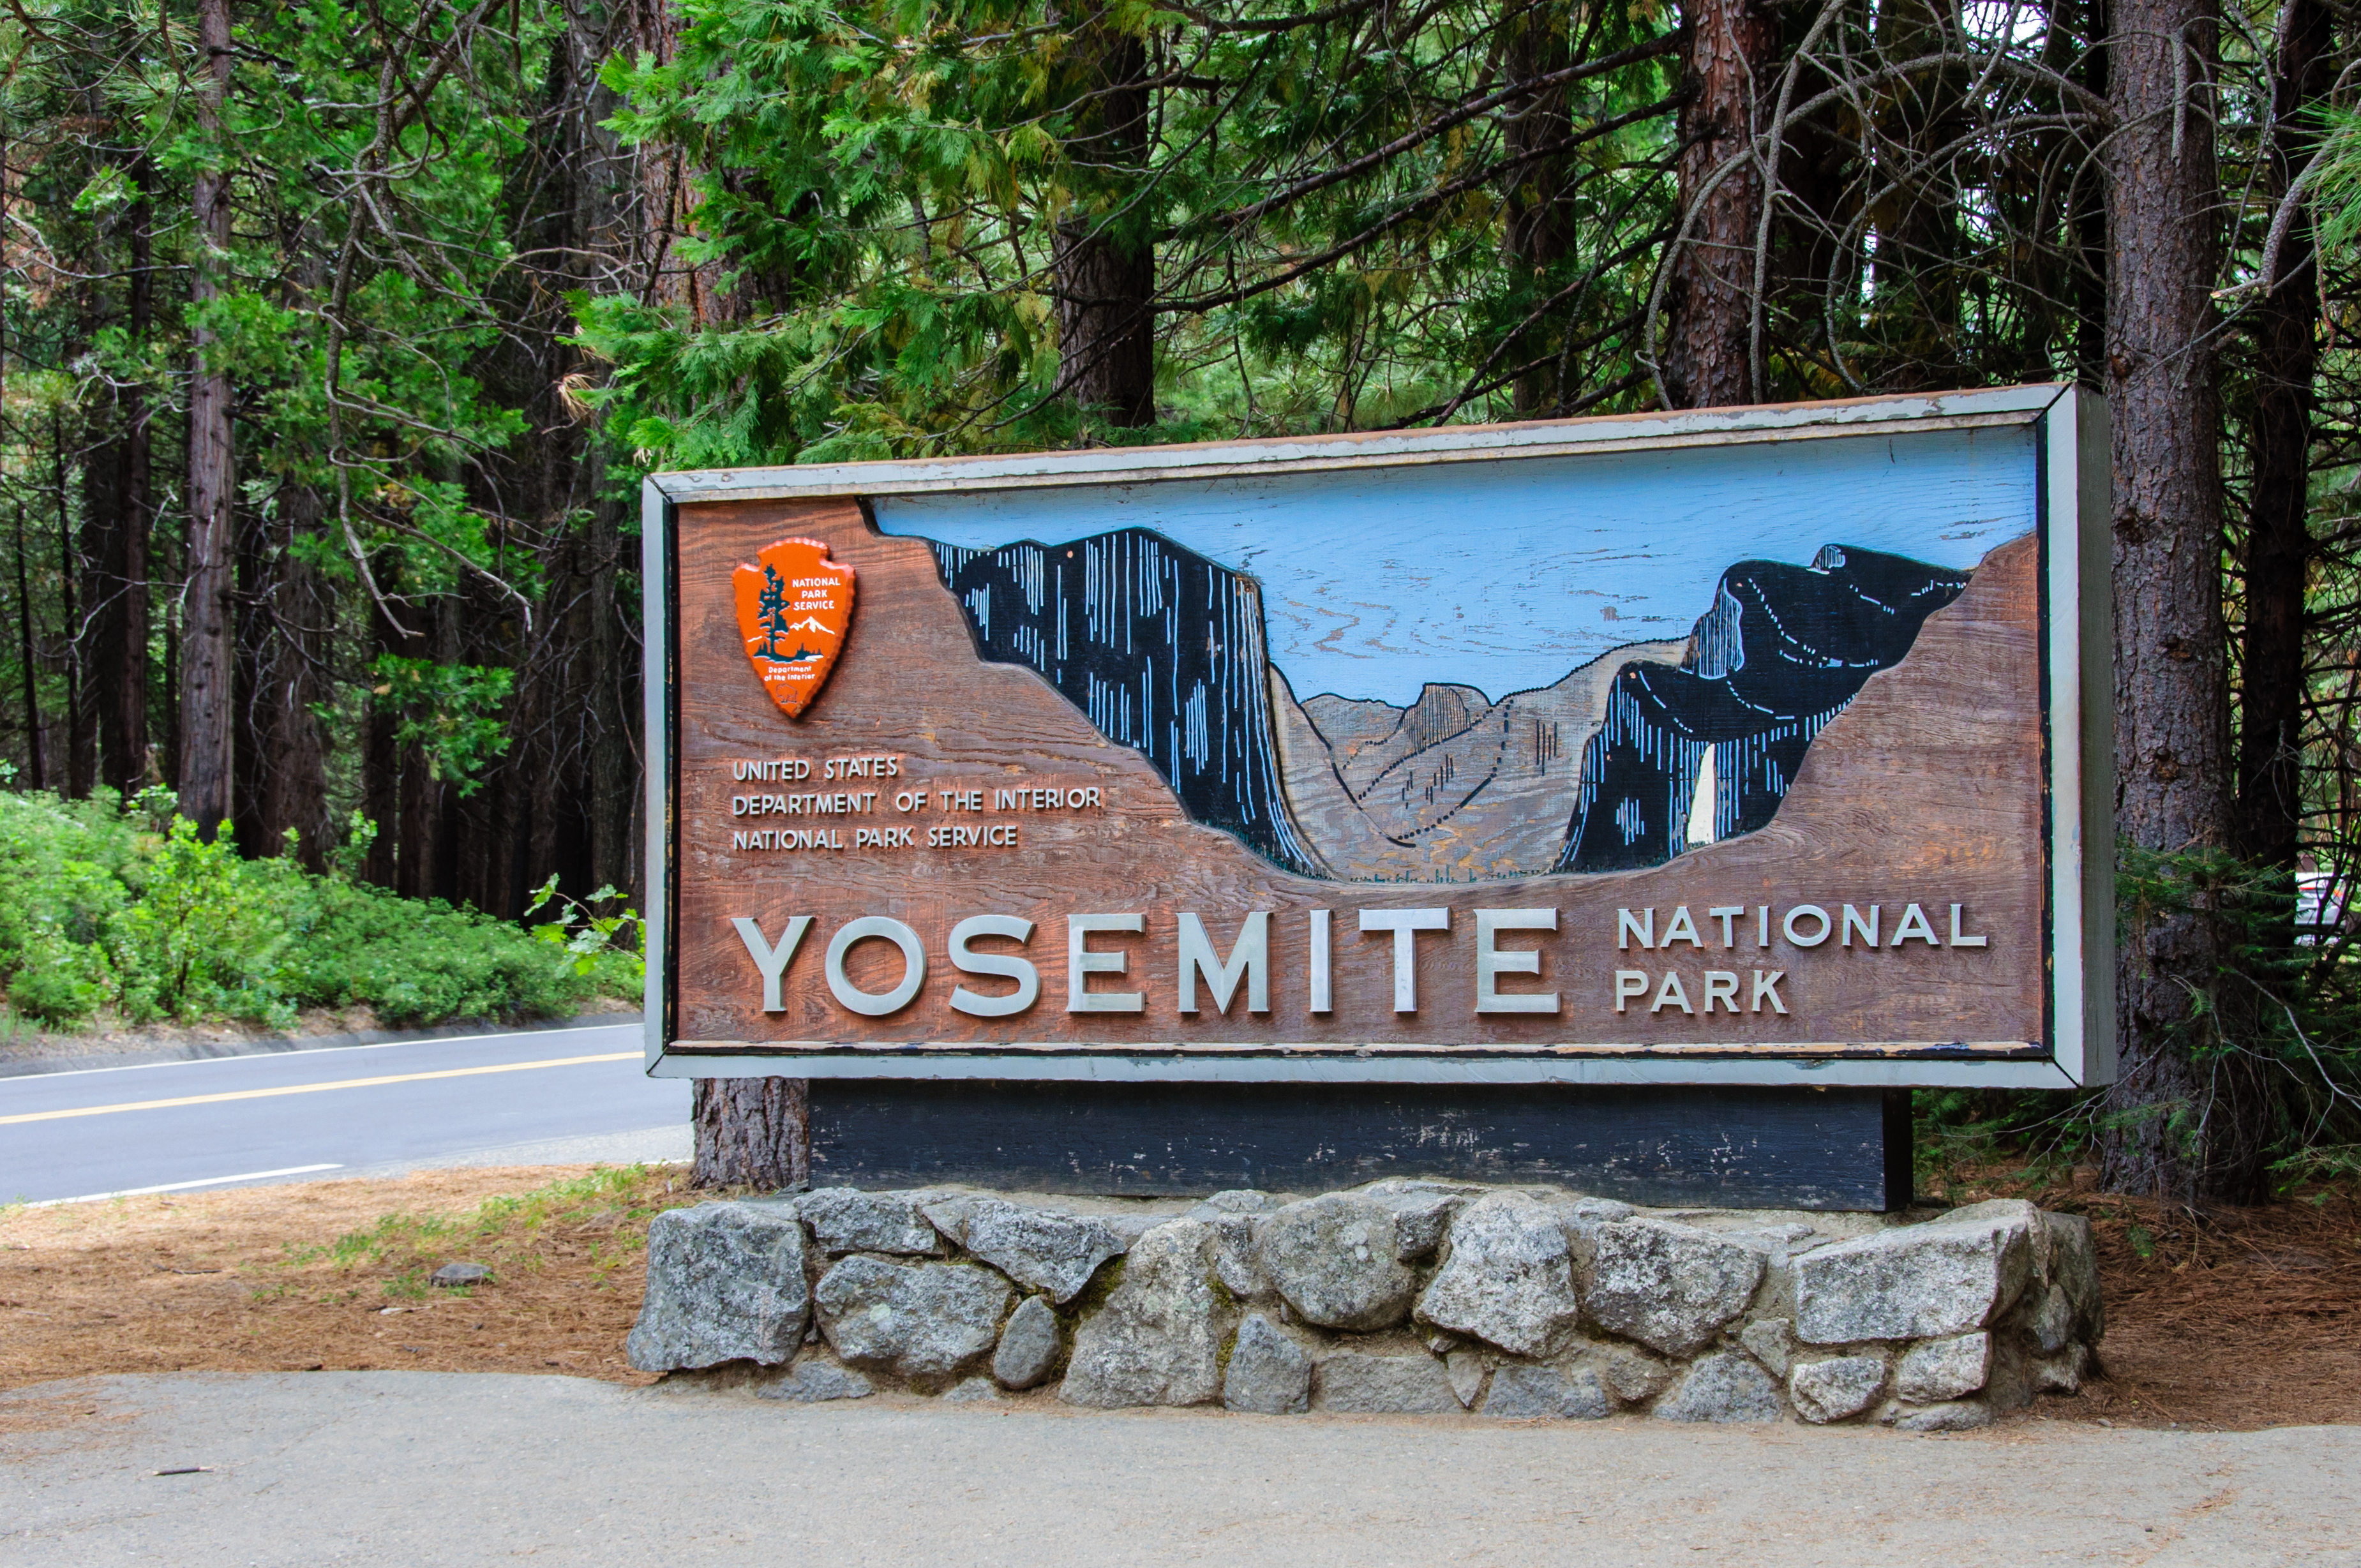 21-Year Old Man Dies After Falling Near A Waterfall In Yosemite Park